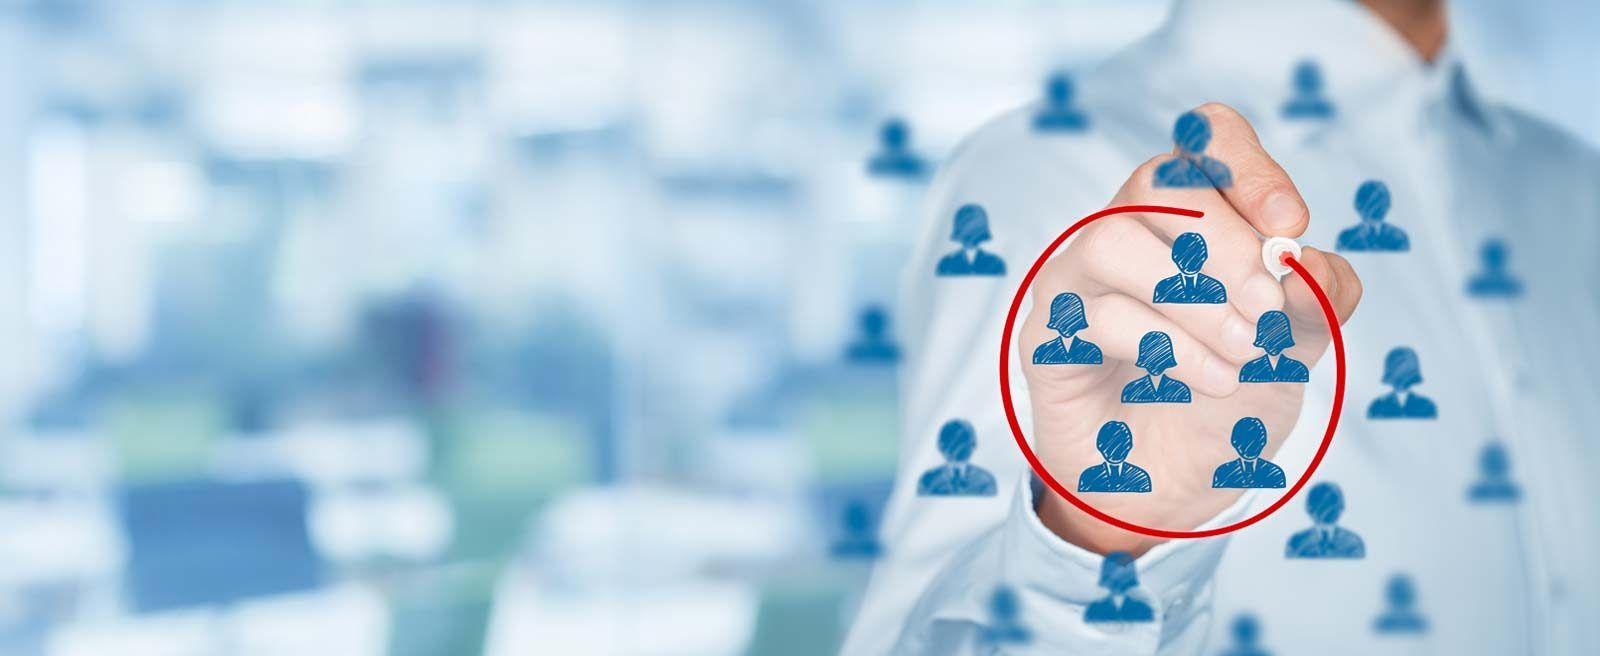 How to Generate New Sales Leads